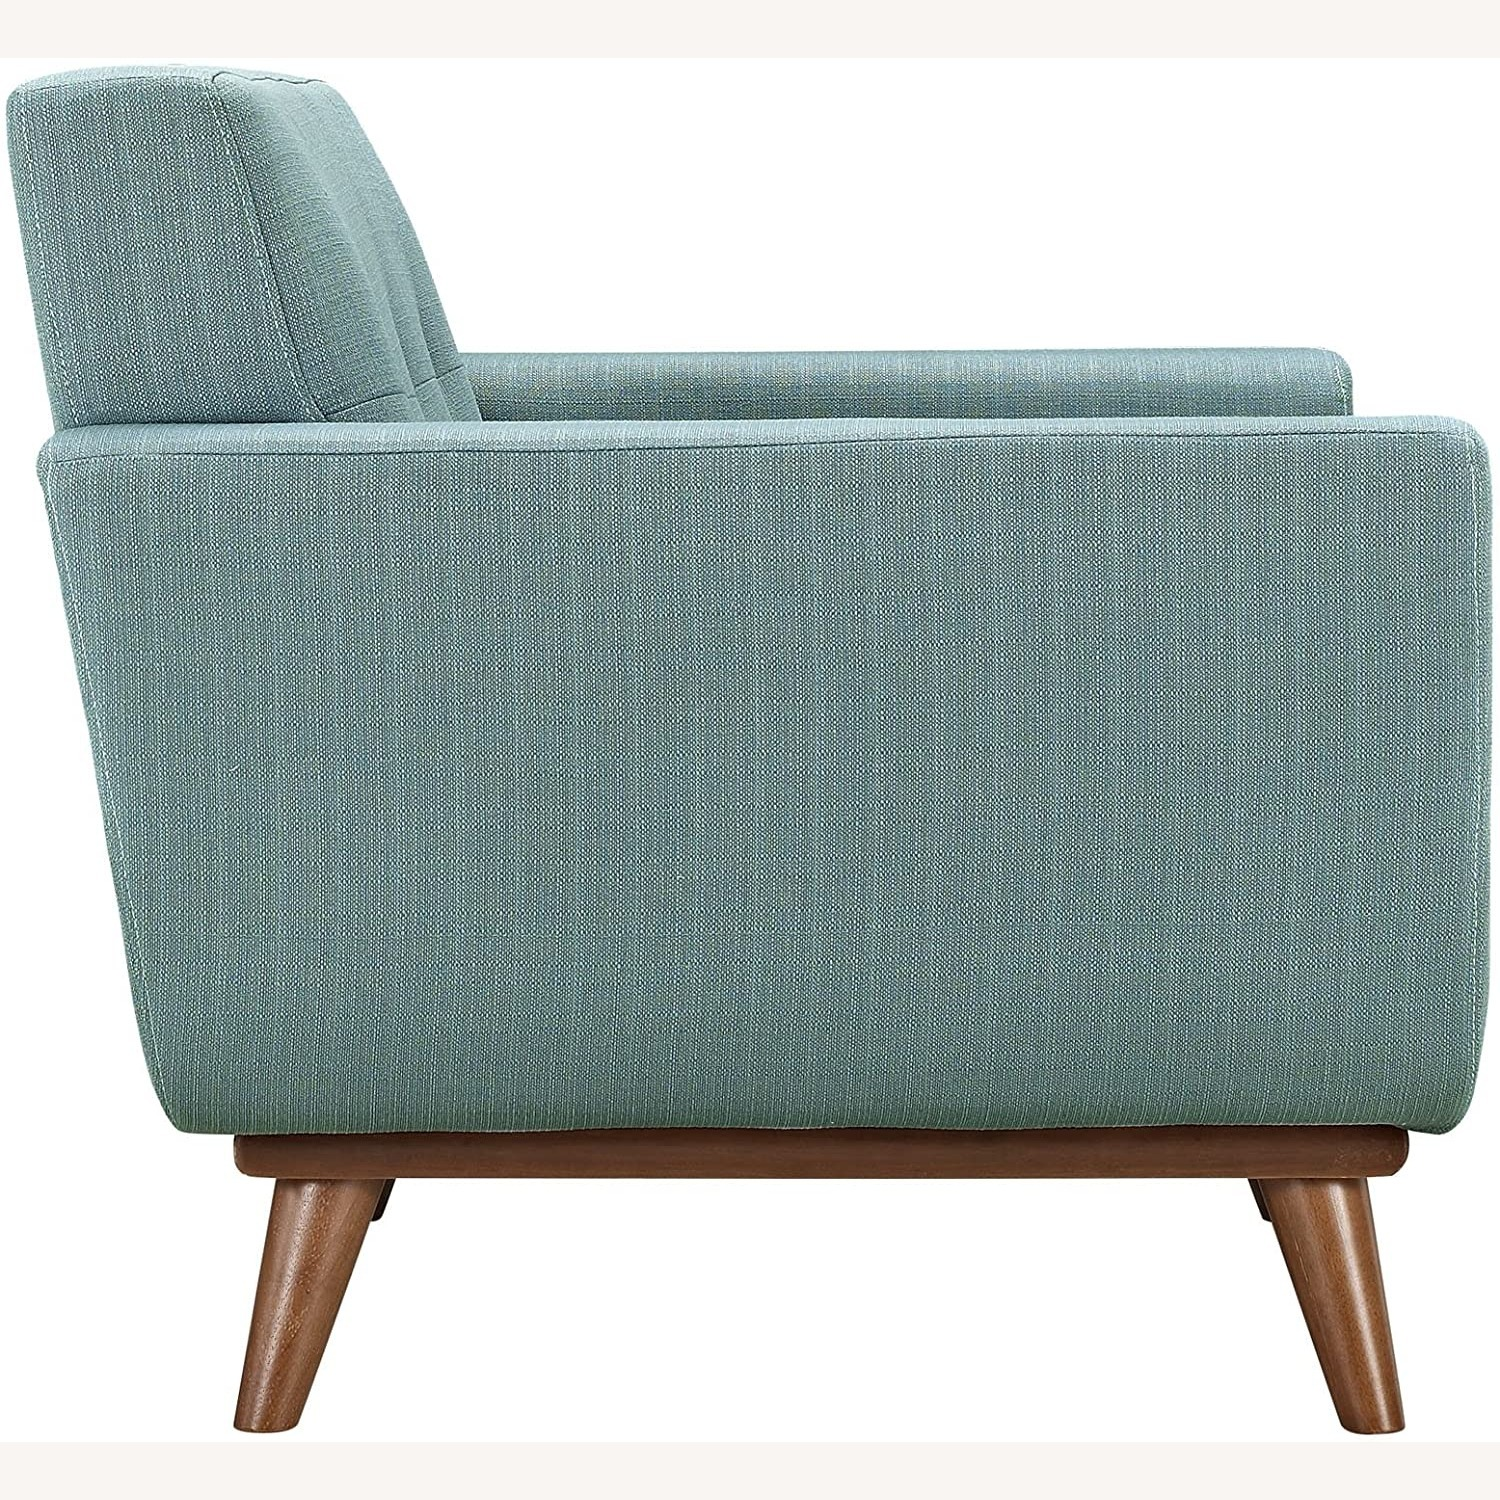 Armchair In Laguna Fabric W/ 3 Tufted Buttons - image-3